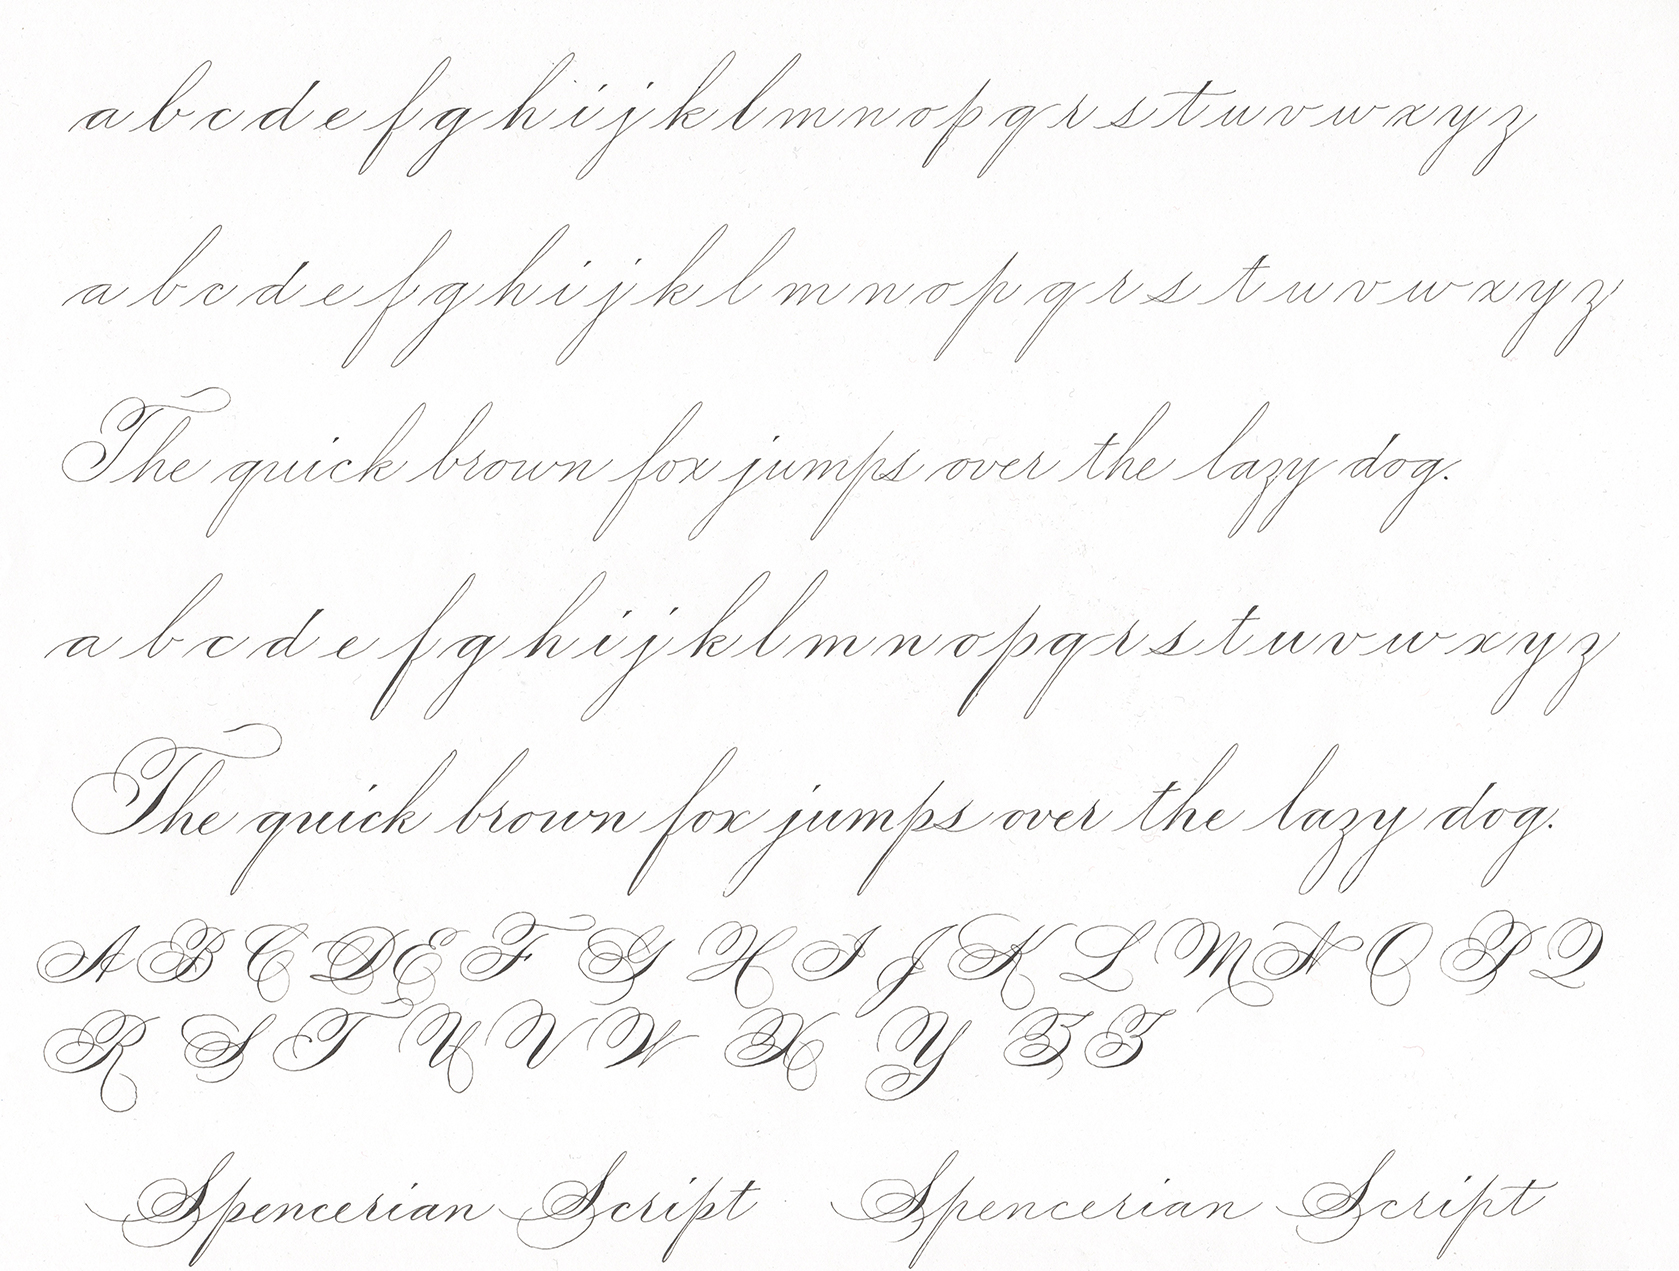 Spencerian Script - Unshaded and Shaded